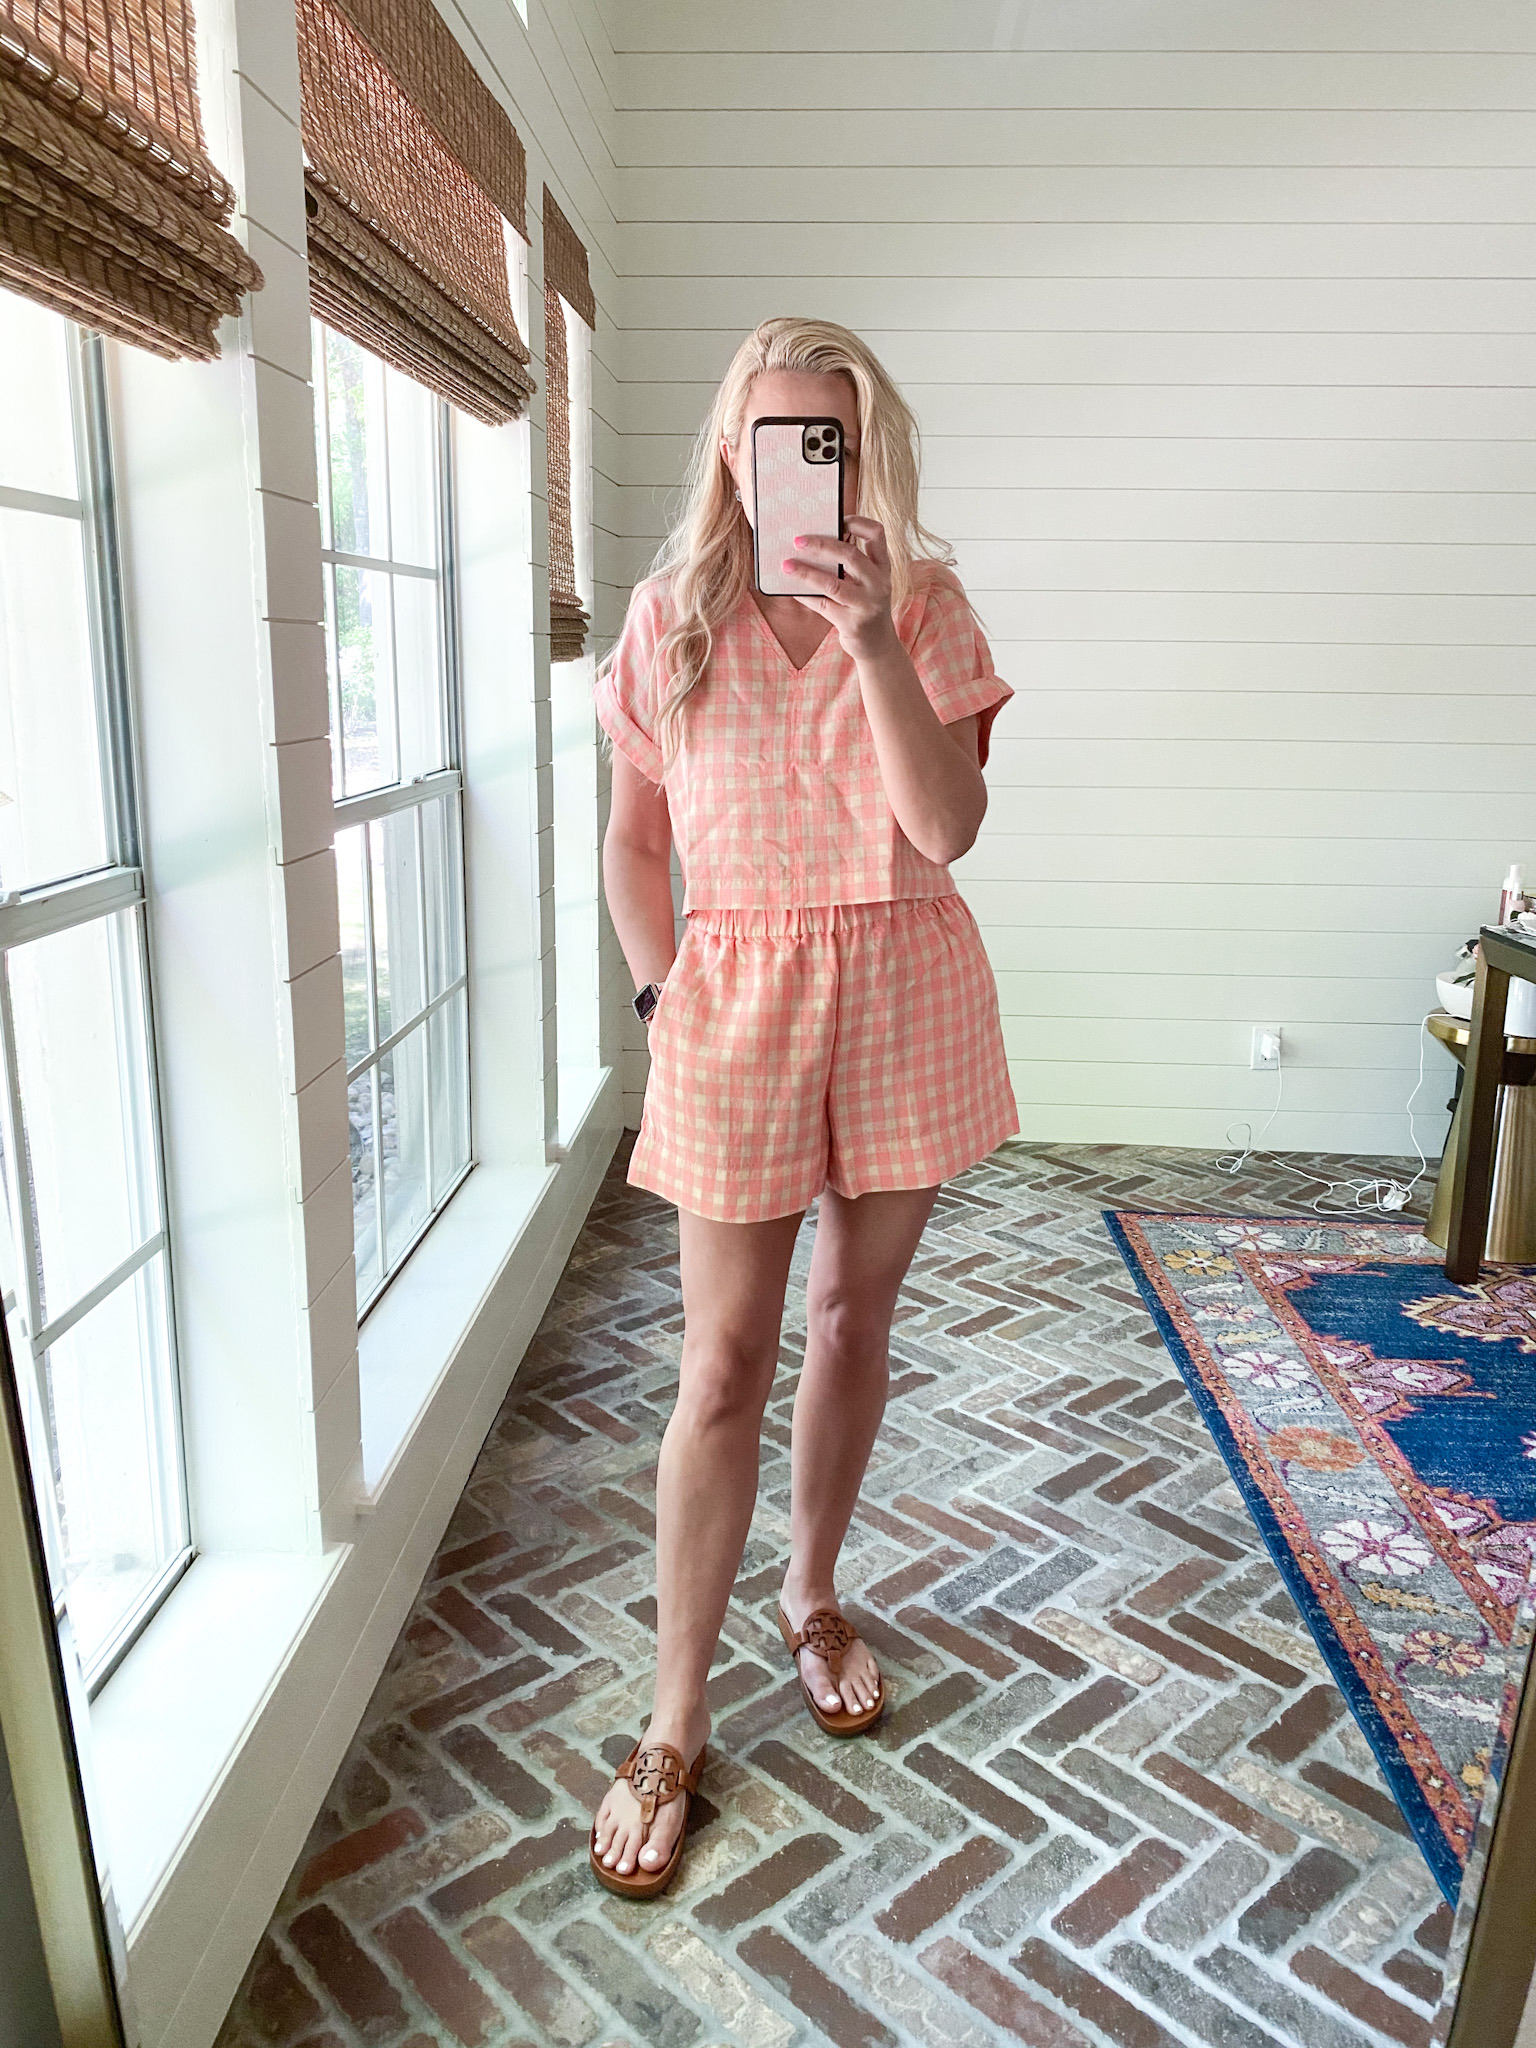 Loft Clothing by popular Houston fashion blog, The House of Fancy: image of a woman wearing a Loft pink and cream gingham shirt and short set with brown Tory Burch slide sandals.